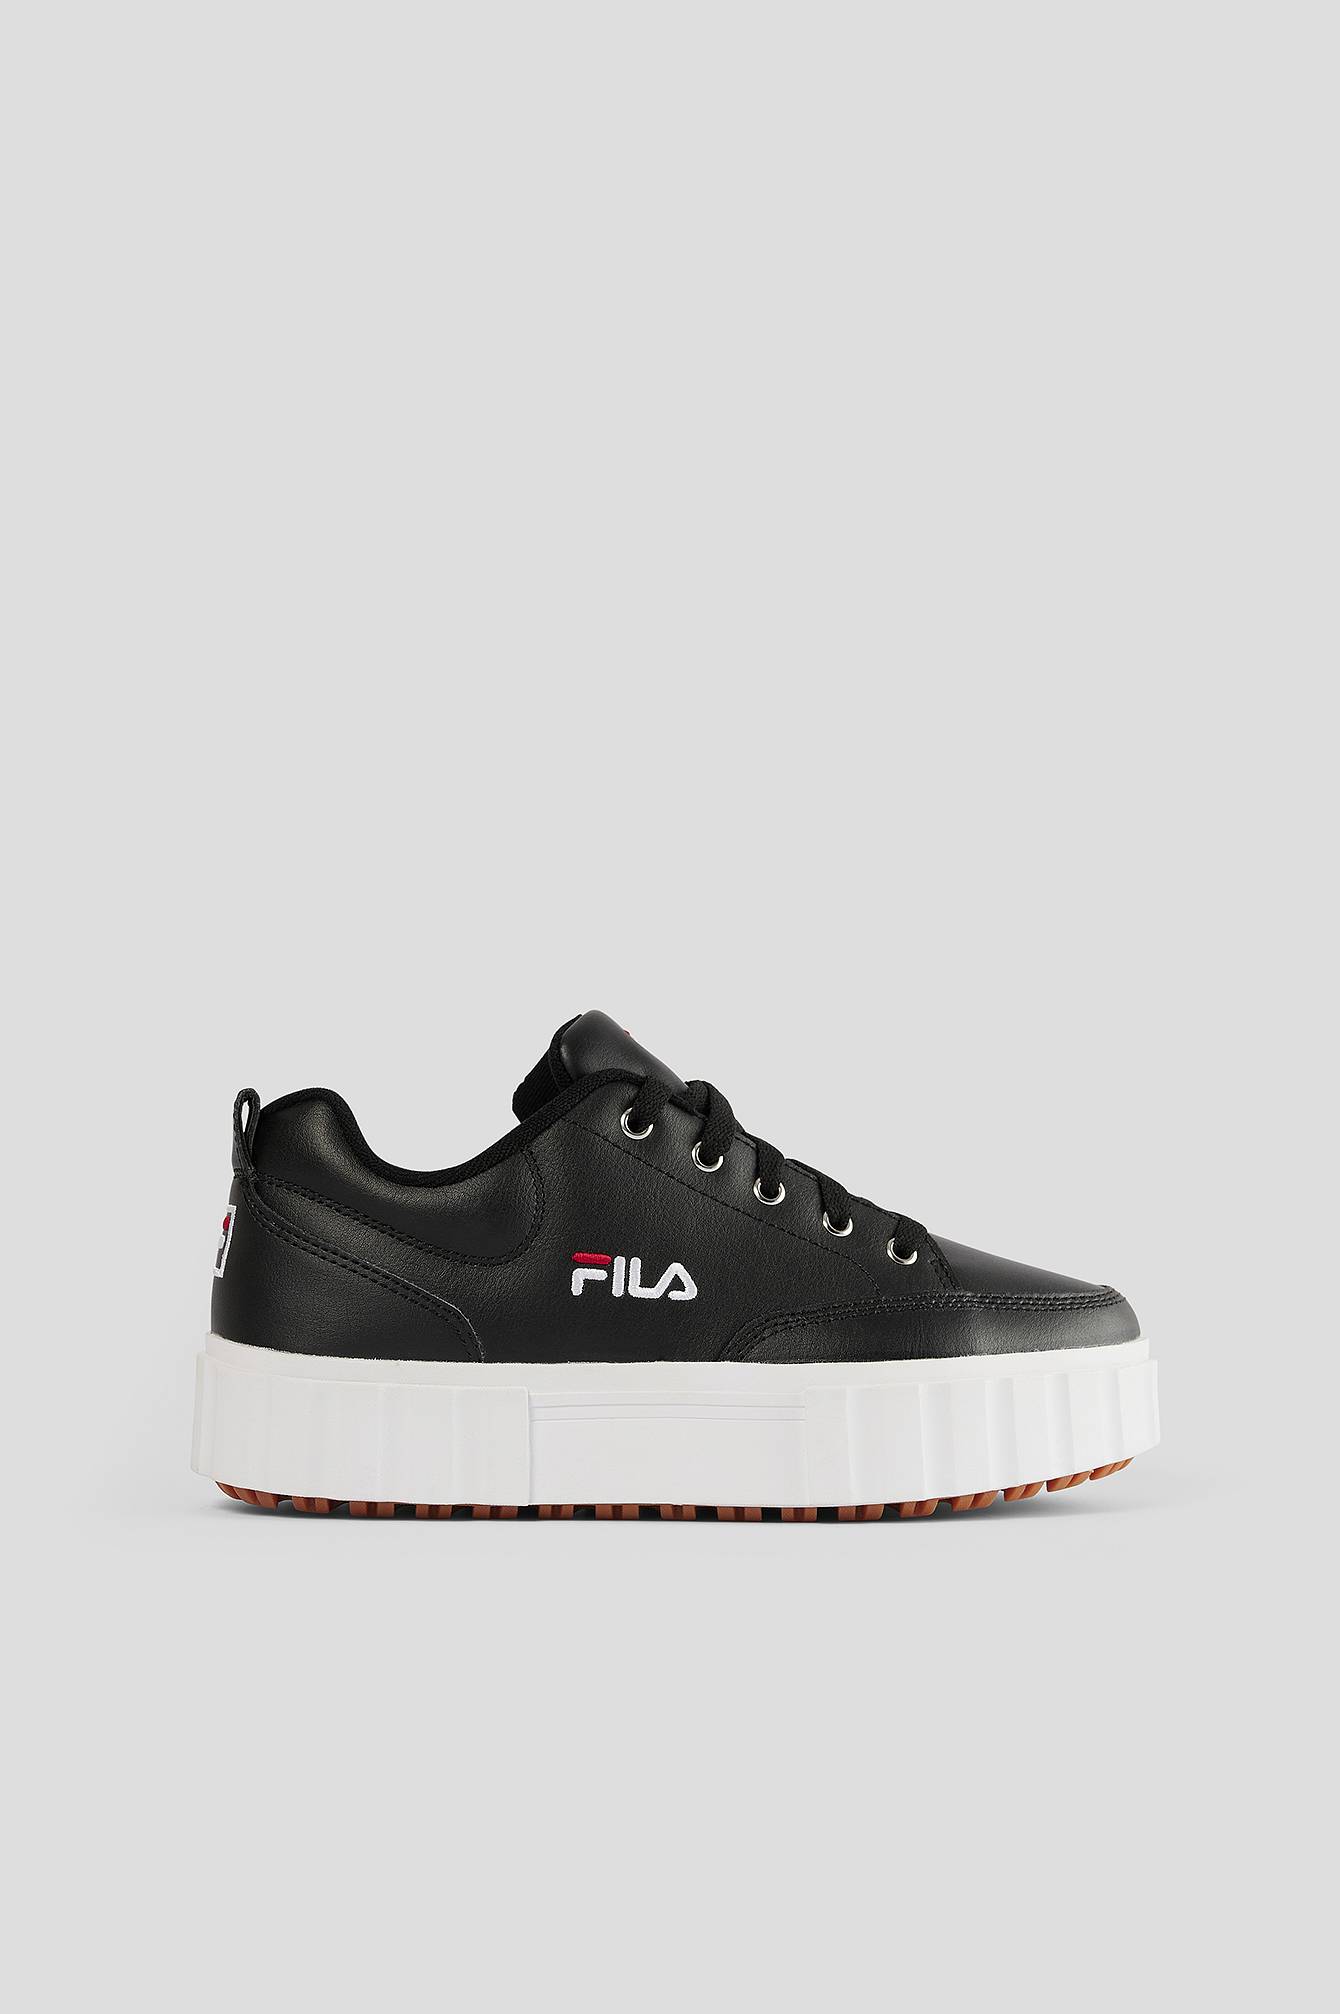 FILA Nahkatennarit - Black